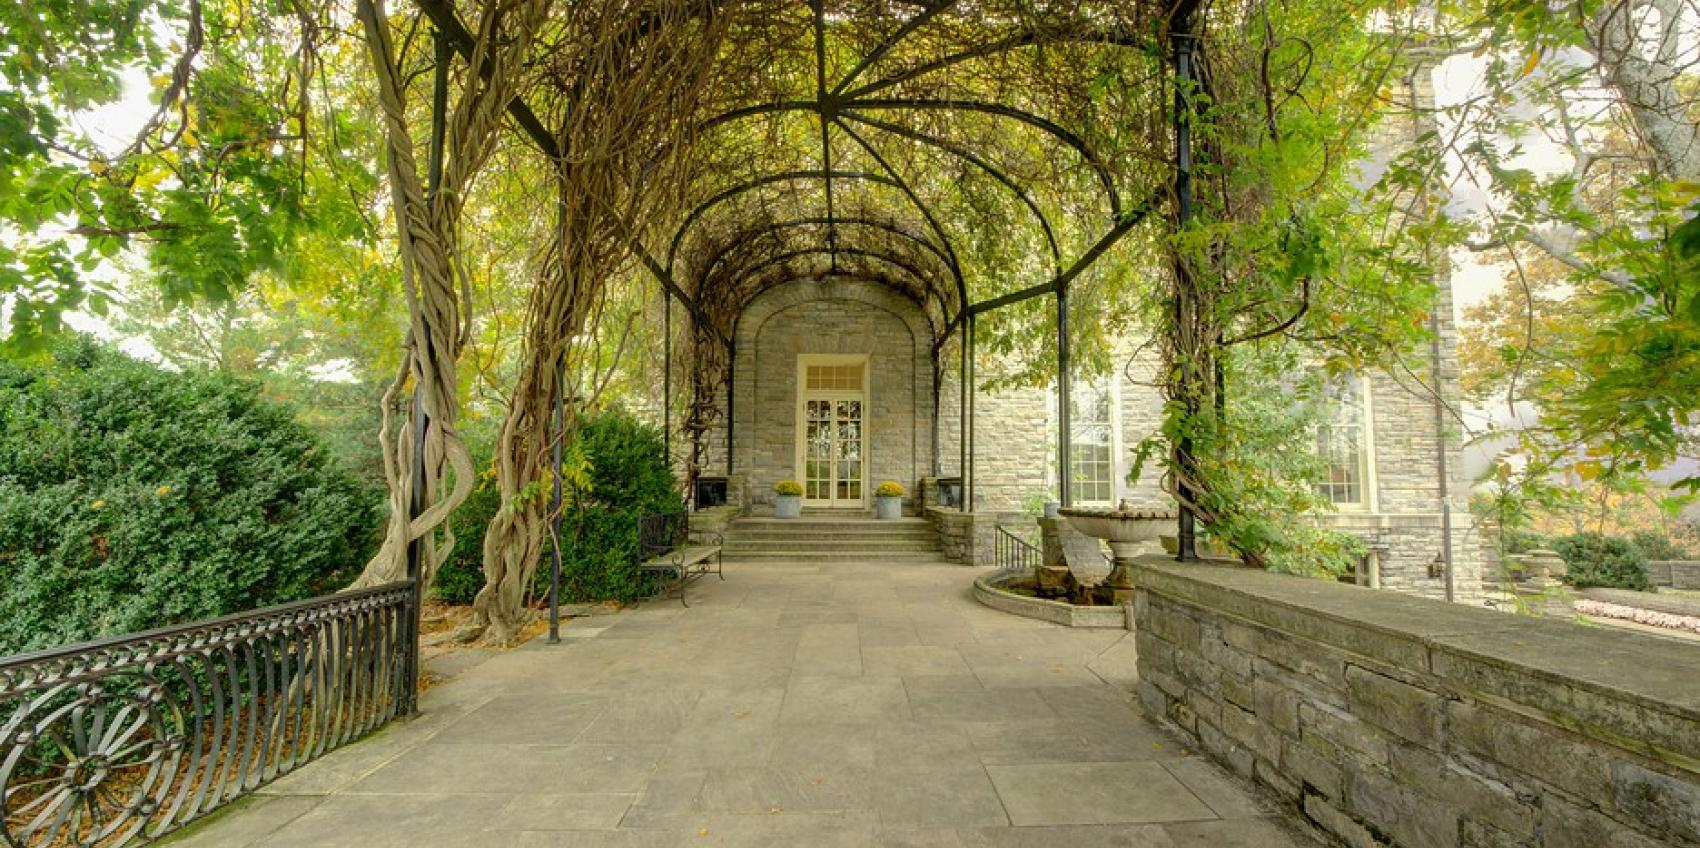 Cheekwood Is A 55 Acre Botanical Garden And Art Museum Located On The  Historic Cheek Estate. Cheekwood Presents World Class Art Exhibitions, ...